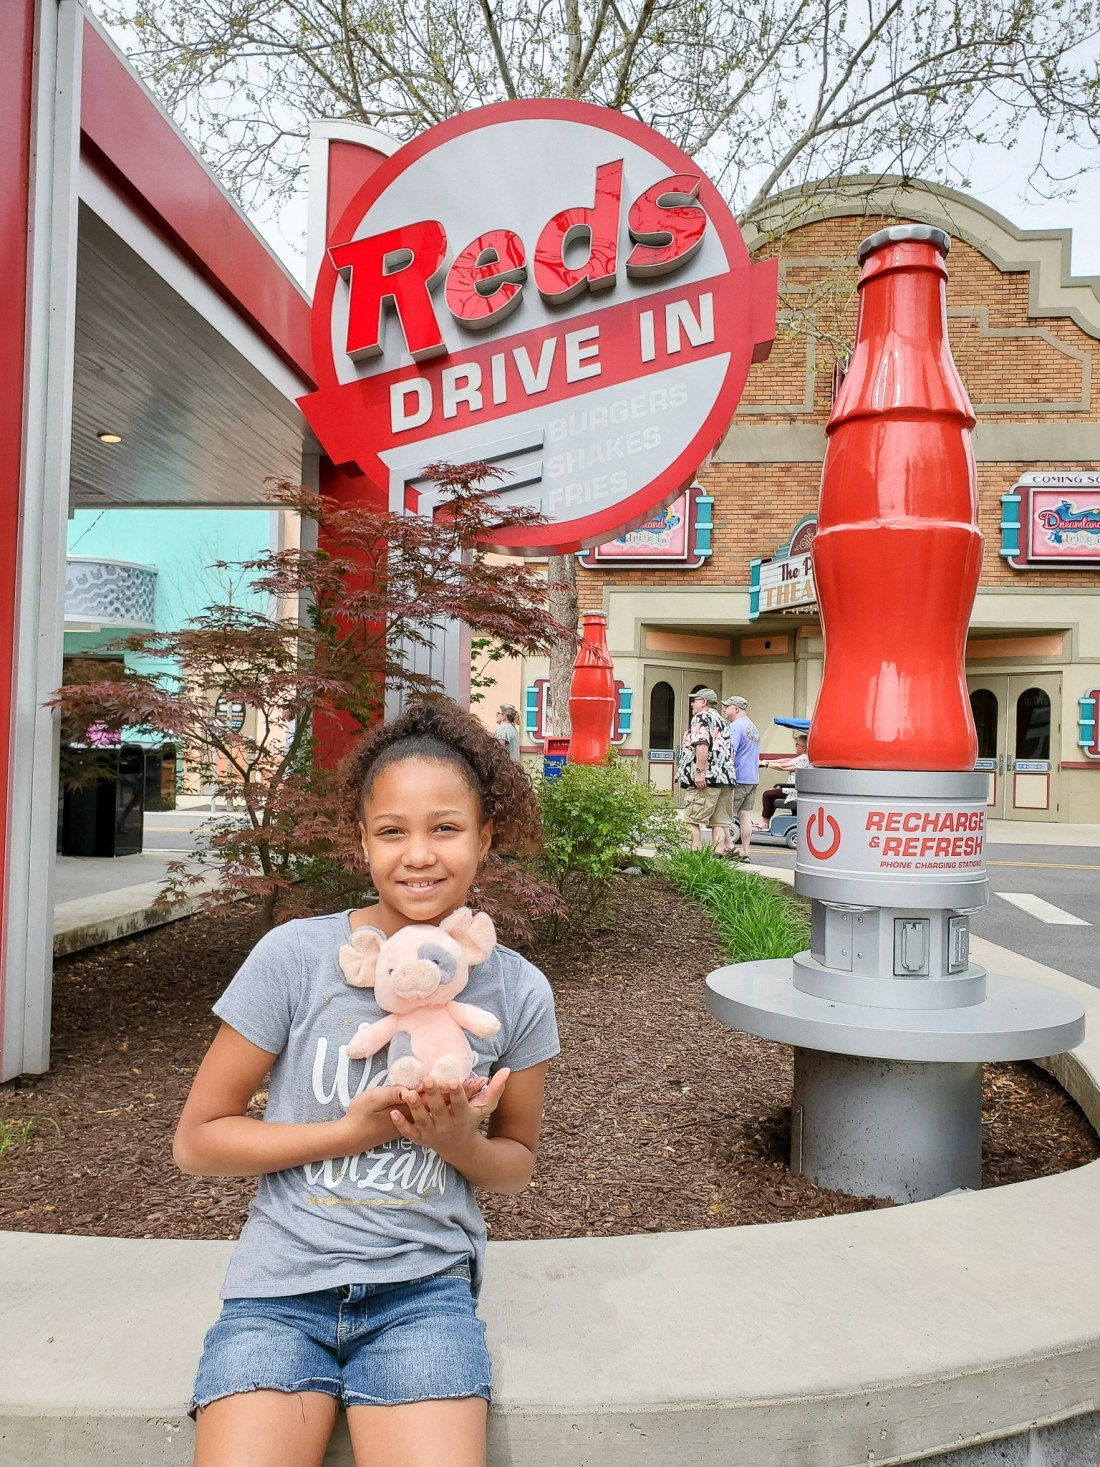 Red's Drive In Dollywood. My family spent the day playing and eating at the Dollywood theme park, and we are happy to report we had a blast! Read all about our trip and learn why Dollwood is a must visit destination while you are in Pigeon Forge, TN.